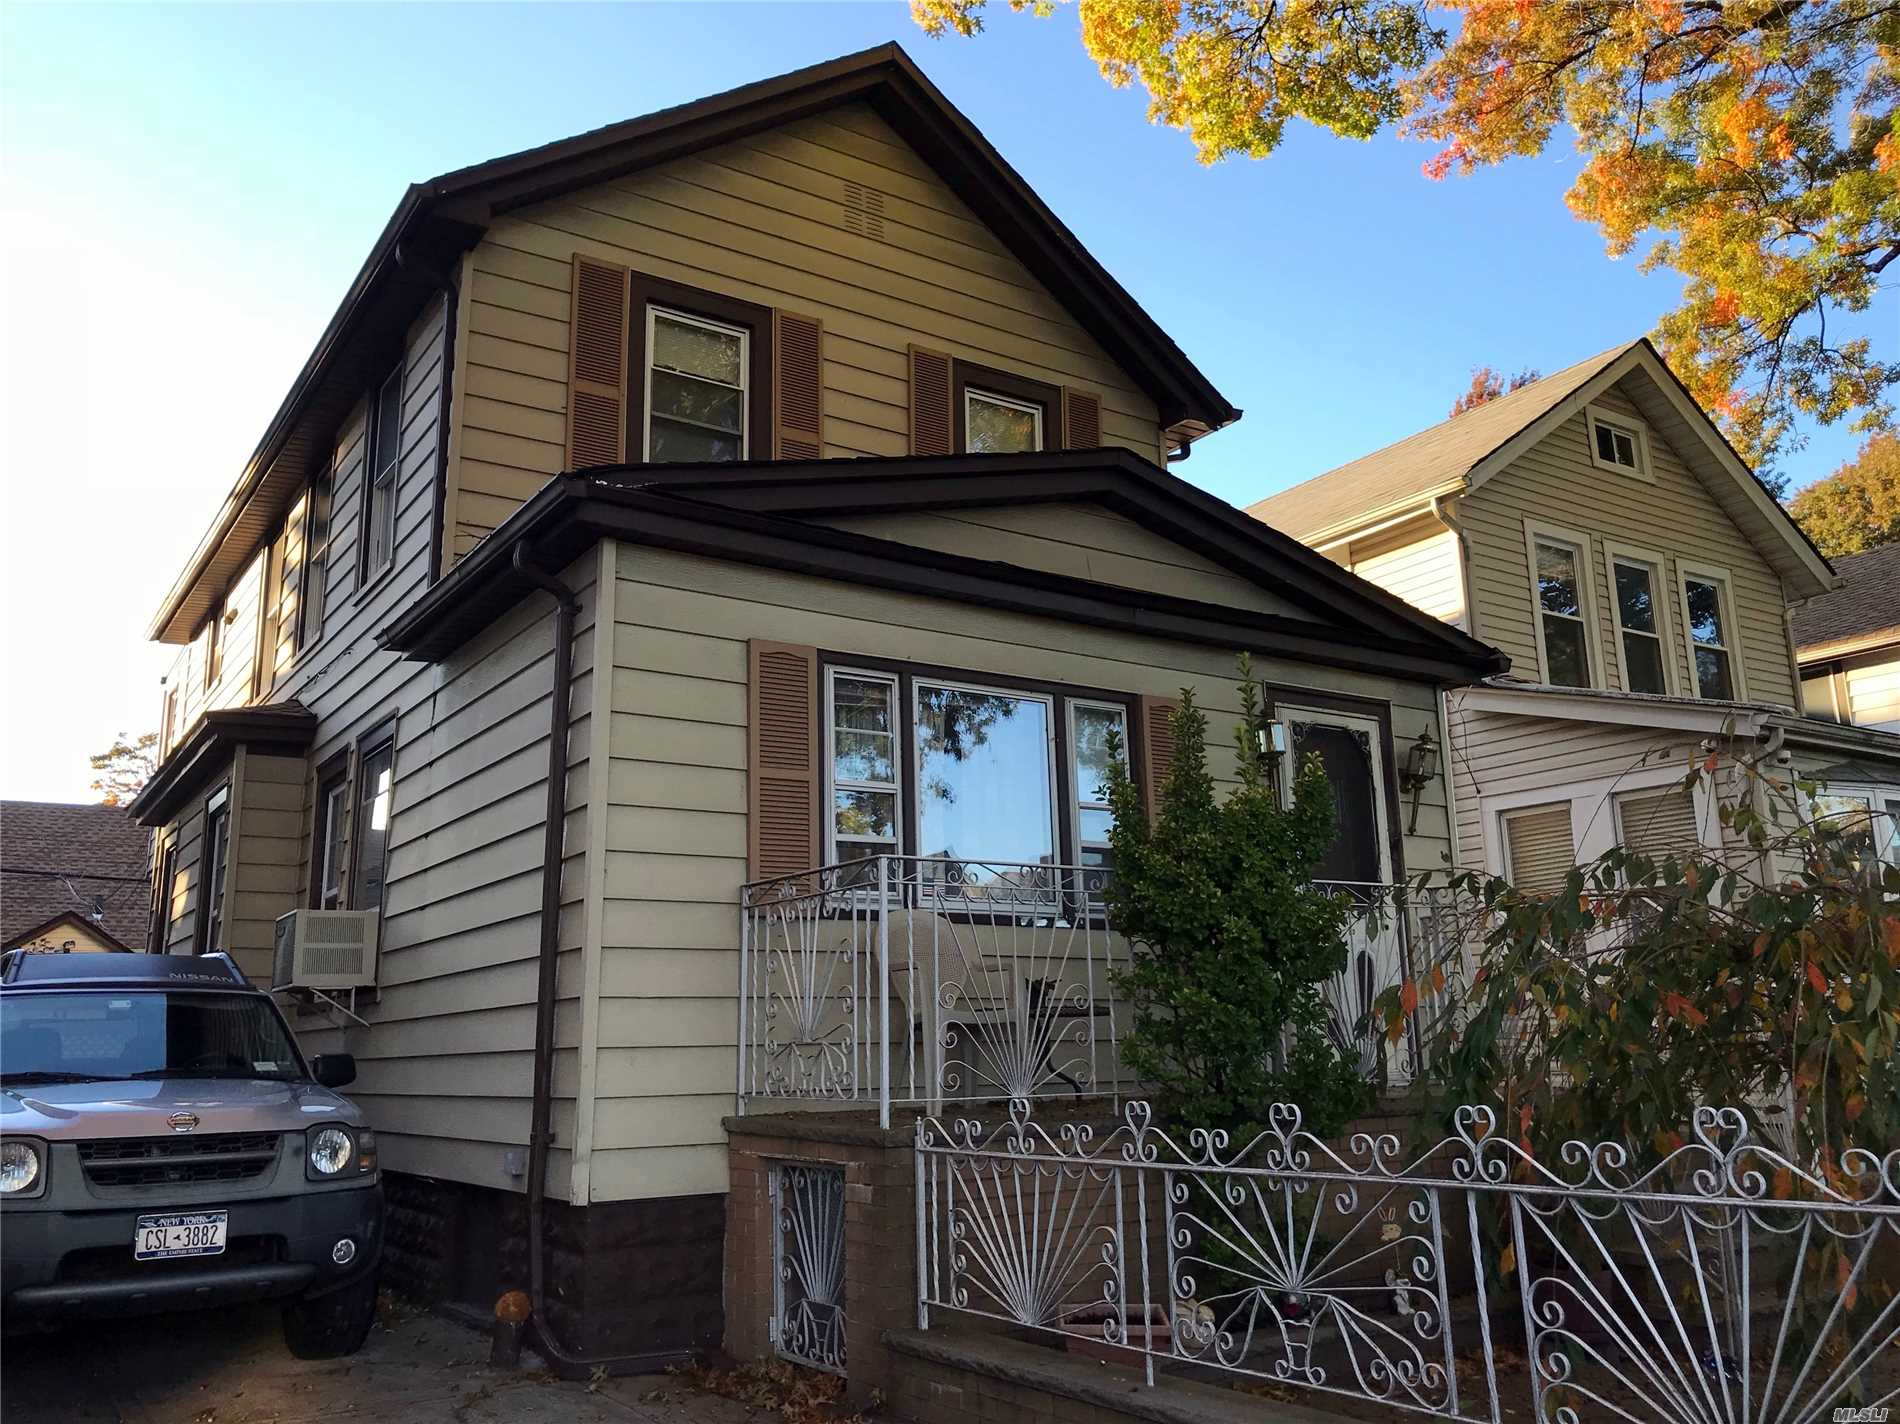 Extended 2 Family House Located 1 Block Away From Northern Blvd/10 Min.Walking Distance From Lirr/ 3 Bedrooms On 1st Floor And Spacious 2 Bedrooms On 2 Fl.Of Appx Total 2000 Sf/ In Great Condition/Sustainable Low Tax